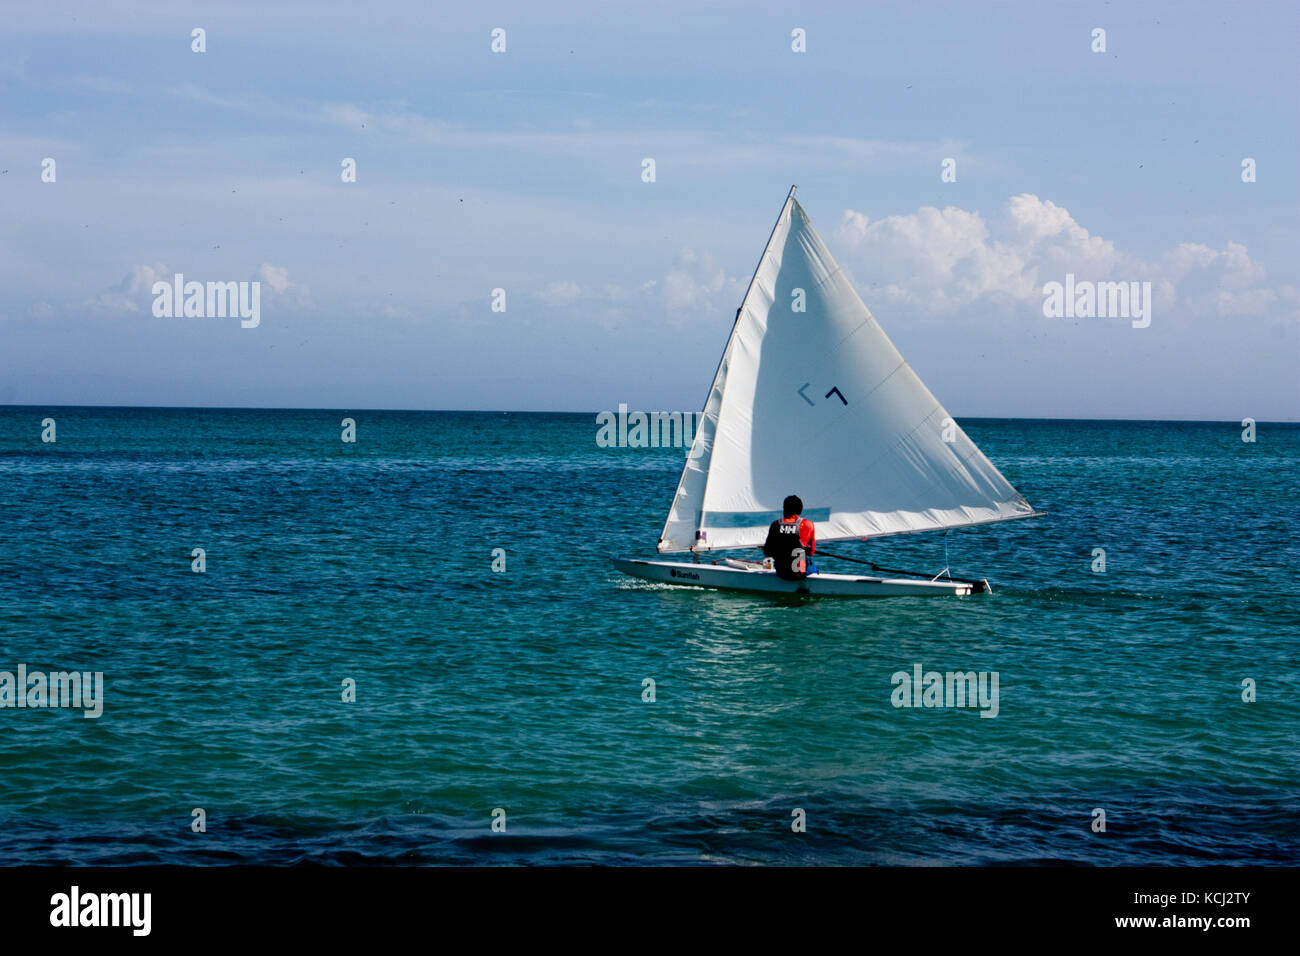 A person sails a boat on the sea in front of a beach in the island of Margarita in Venezuela Stock Photo